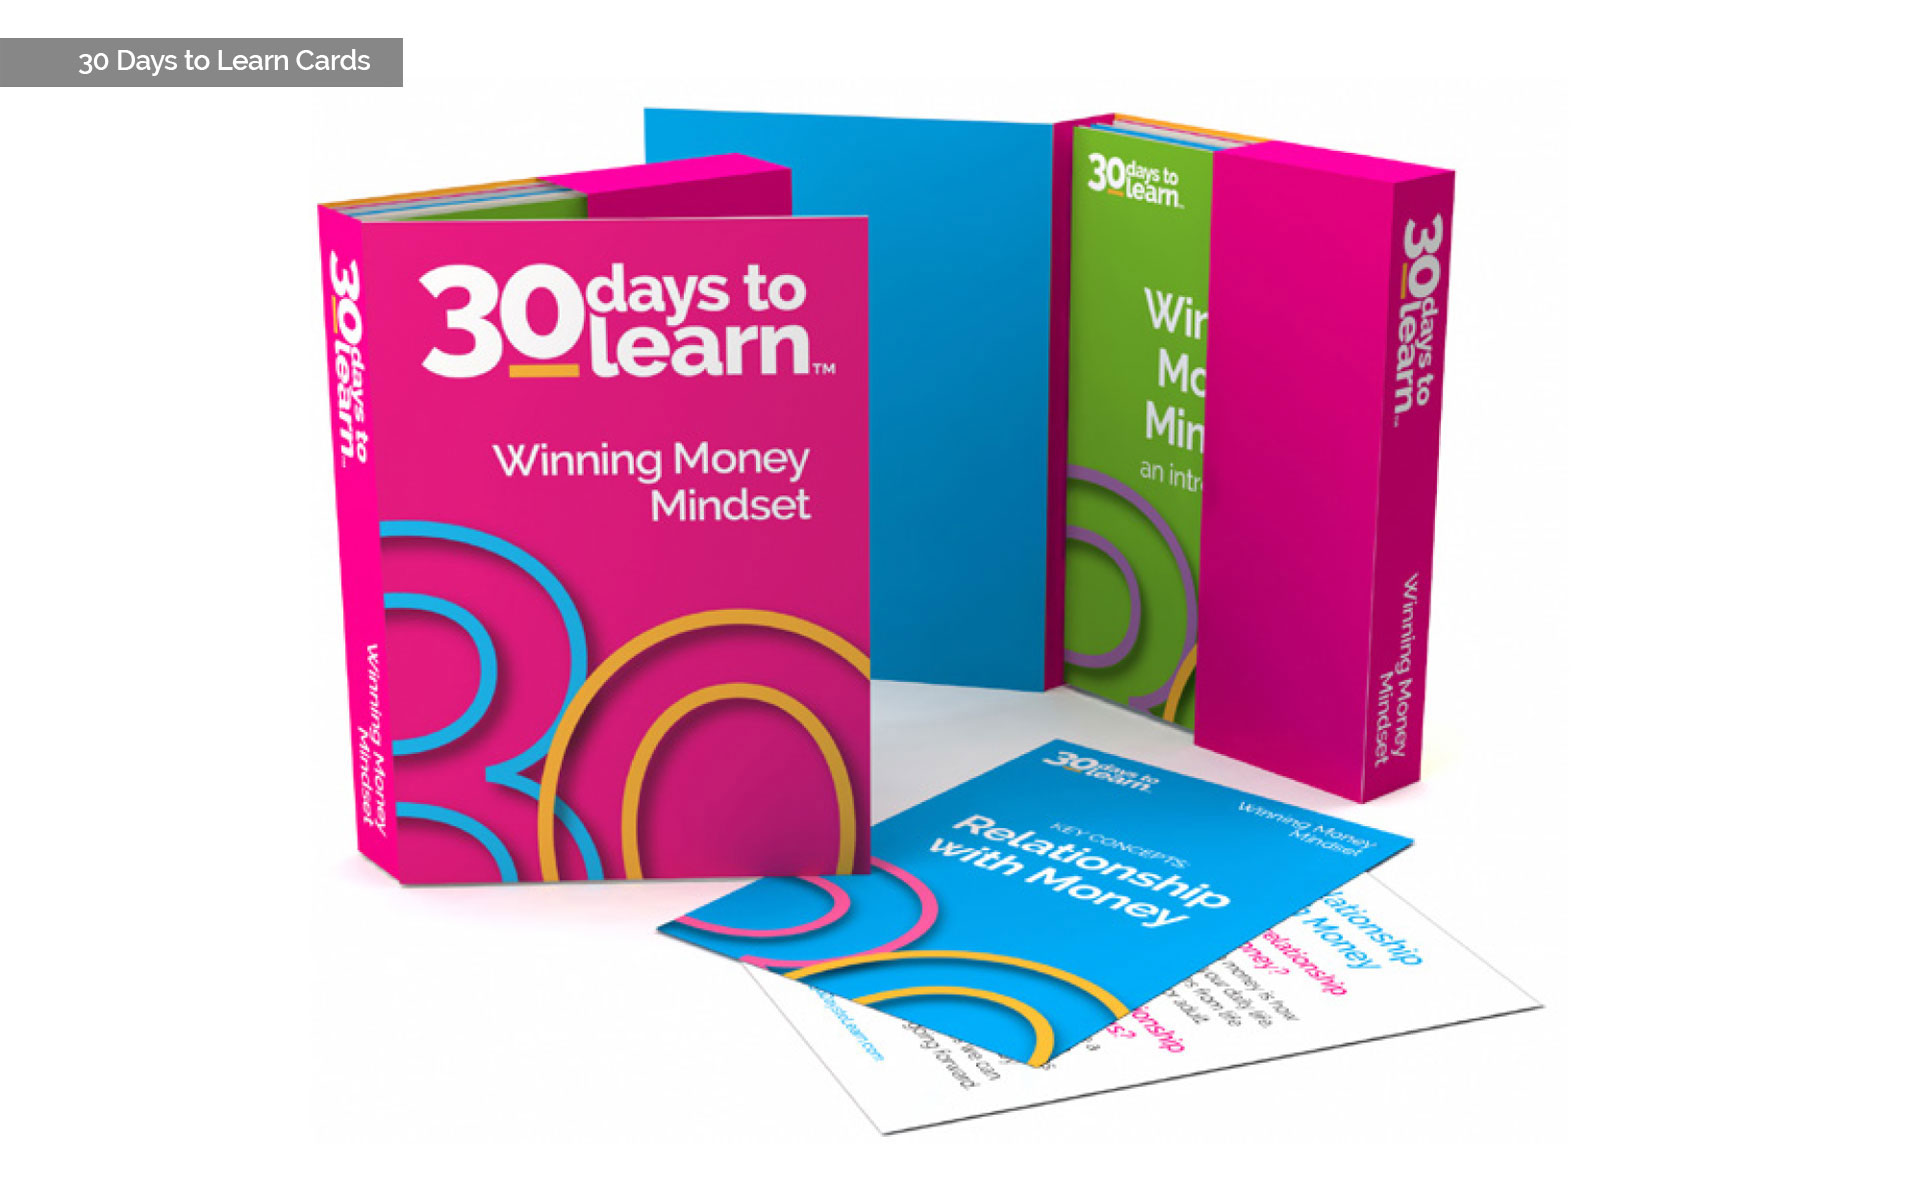 30 days to learn card design